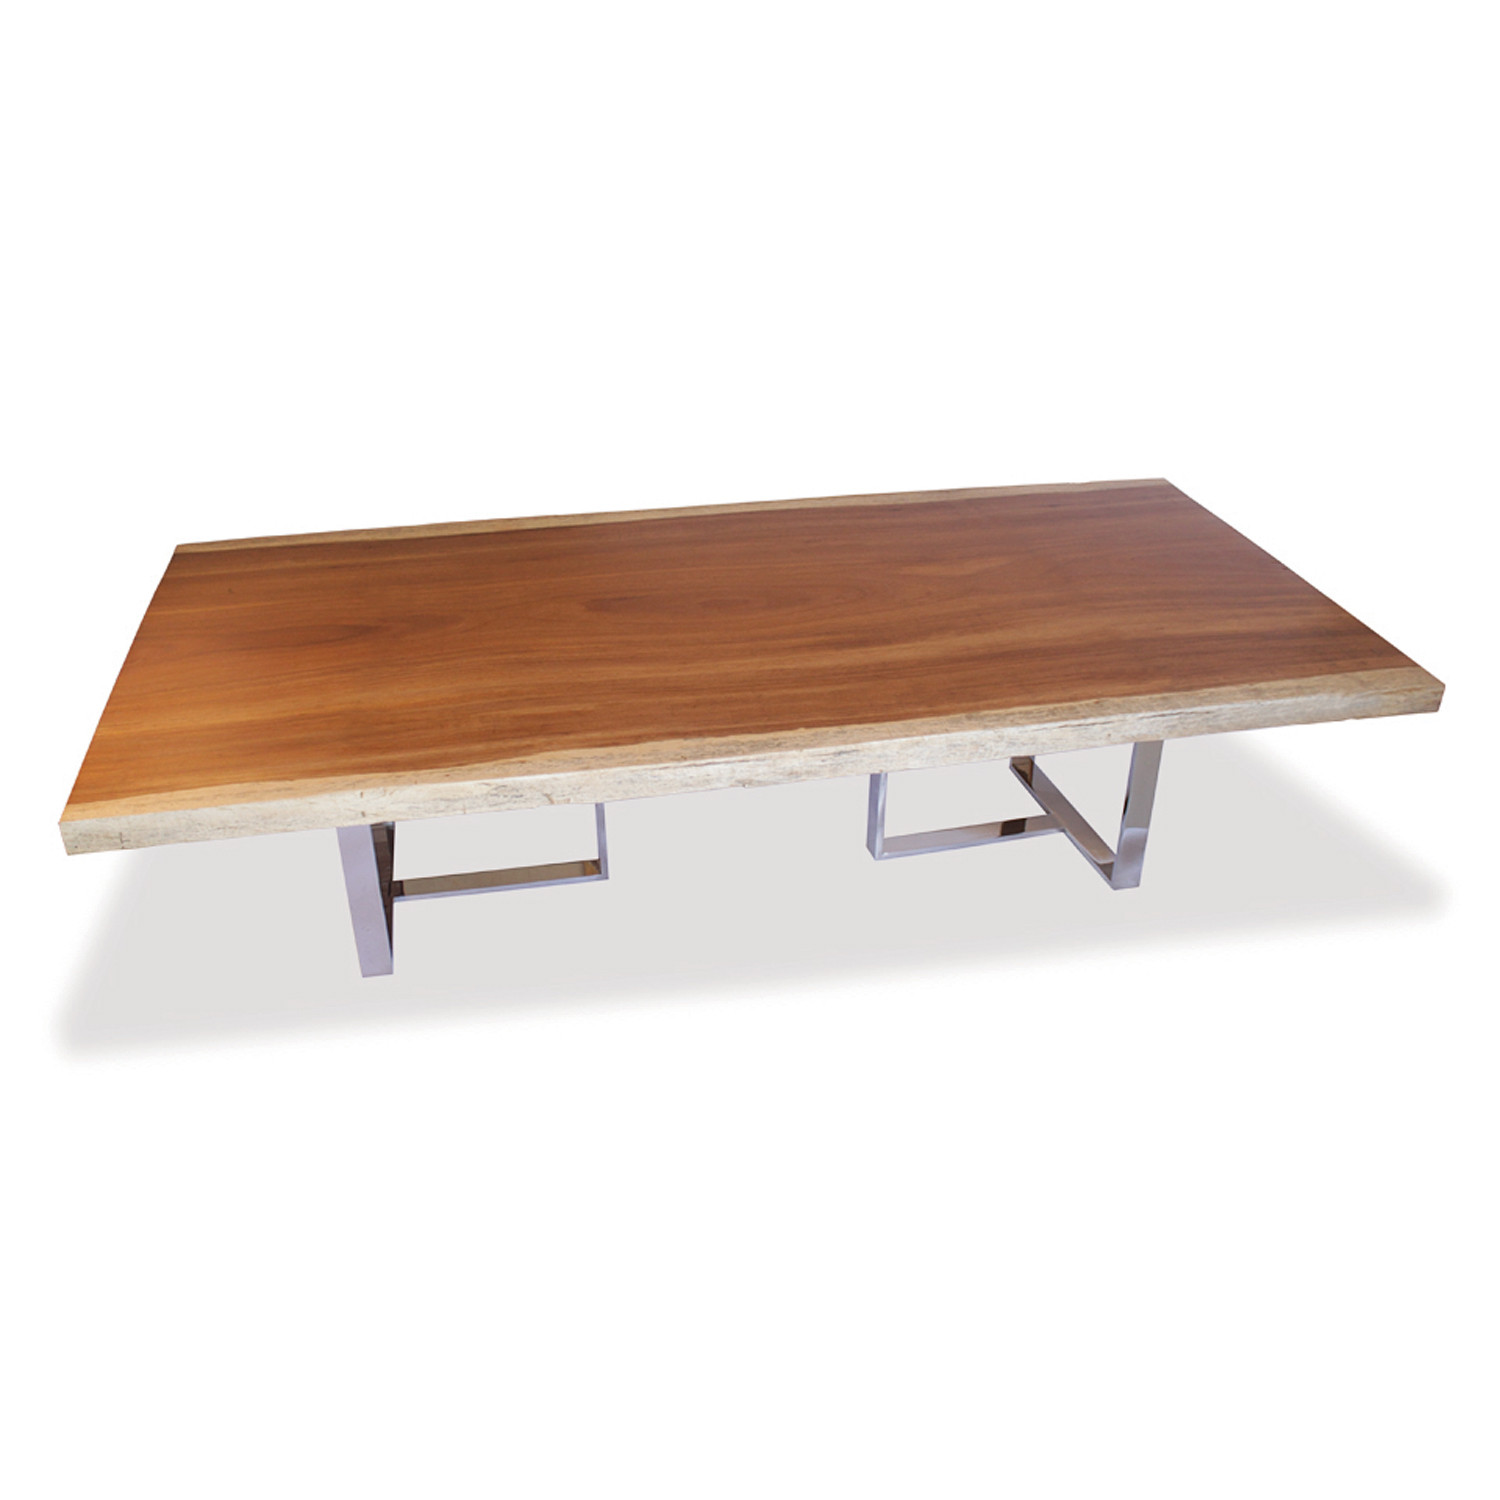 Live Edge Wood Slab & Stainless Steel Dining Table Rotsen